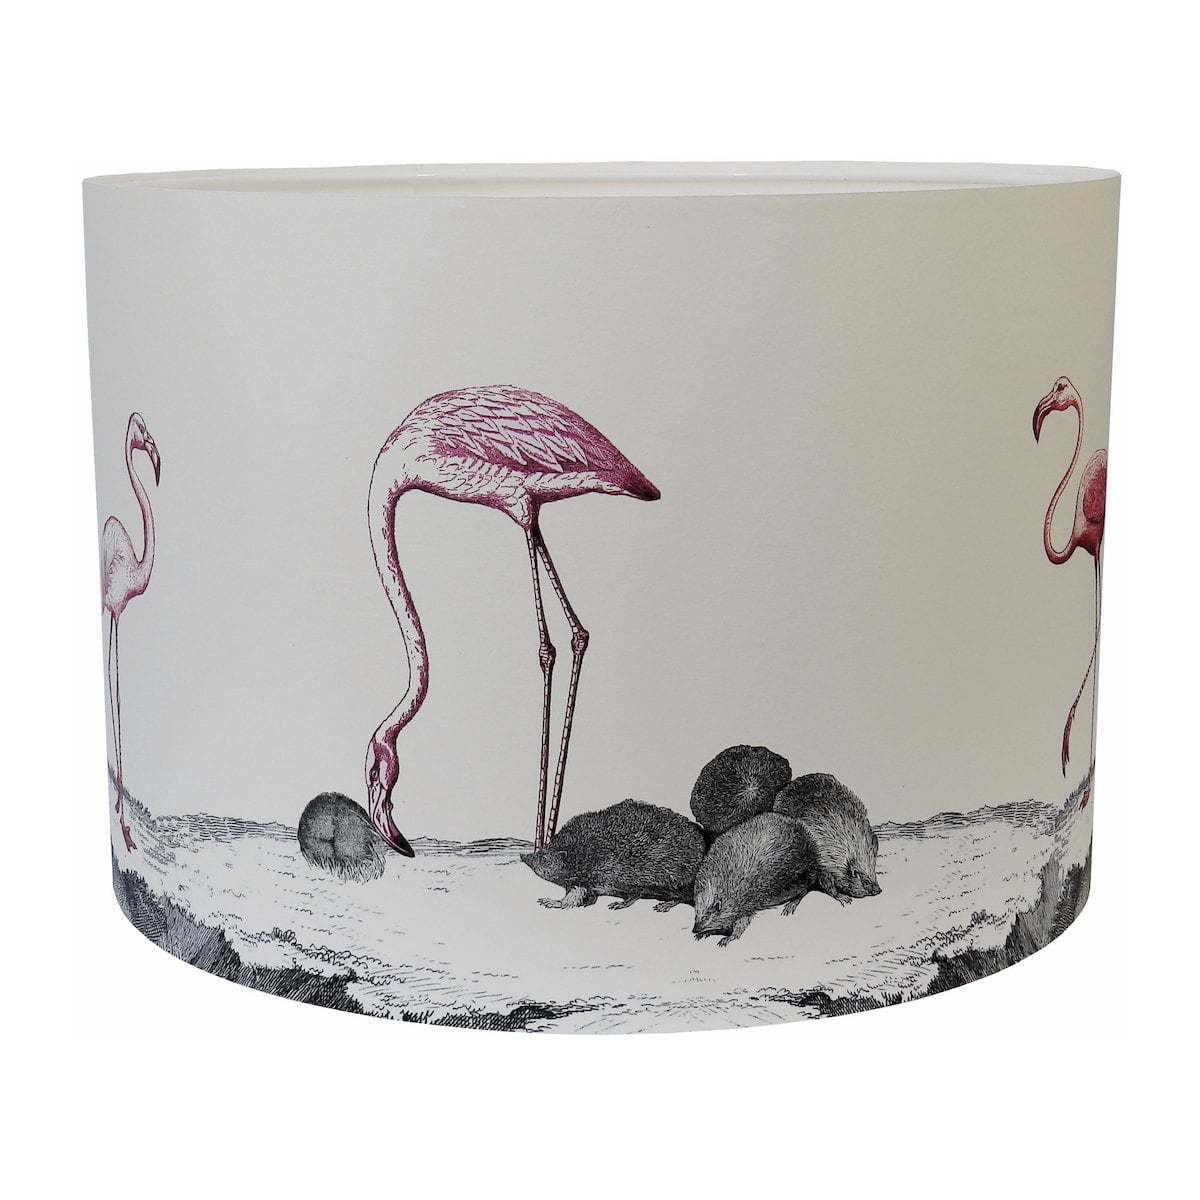 Curious Croquet Lampshade by Mountain & Molehill for AUTHOR's luxury and unique collections of British-made home accessories